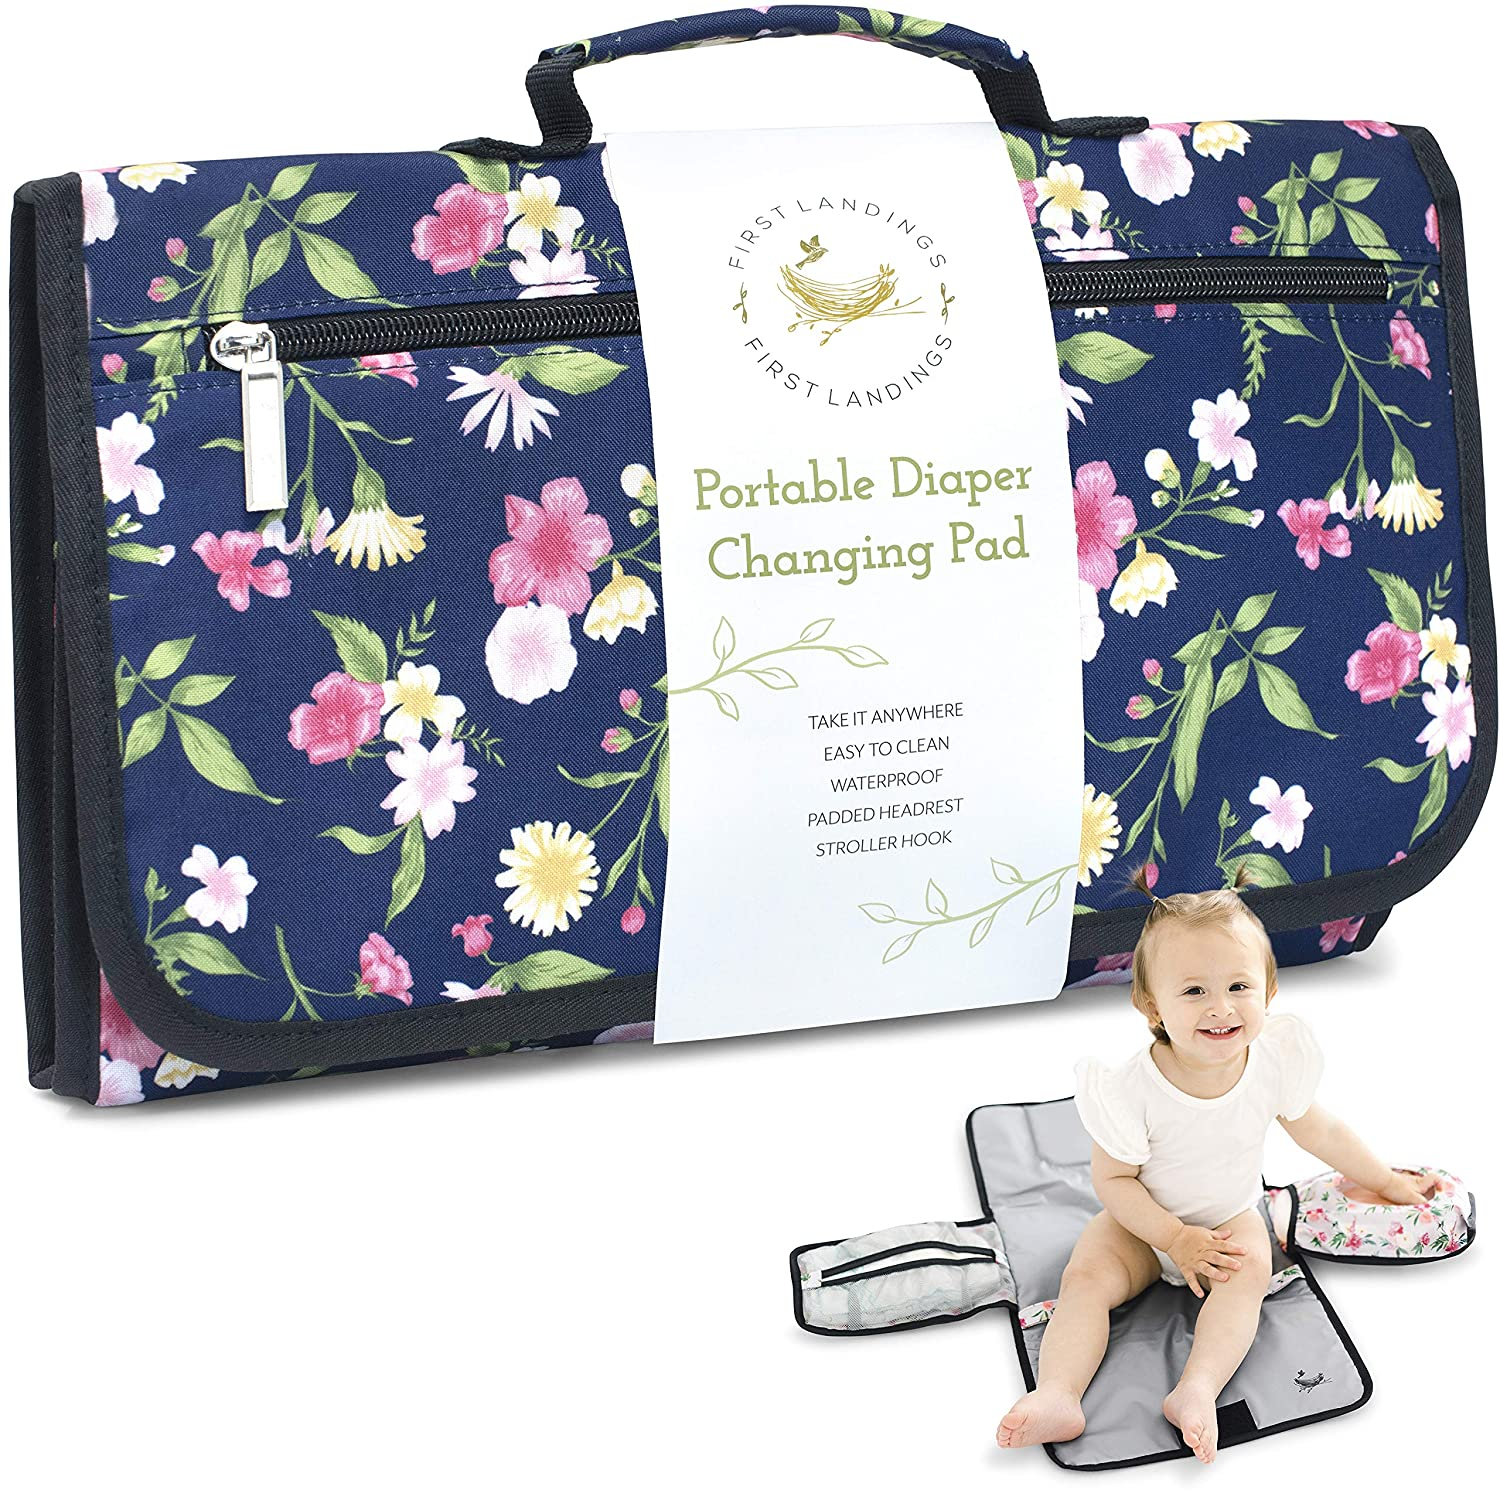 Portable Diaper 1 year Our shop most popular warranty Changing Pad Convenient Travel Baby The On Go